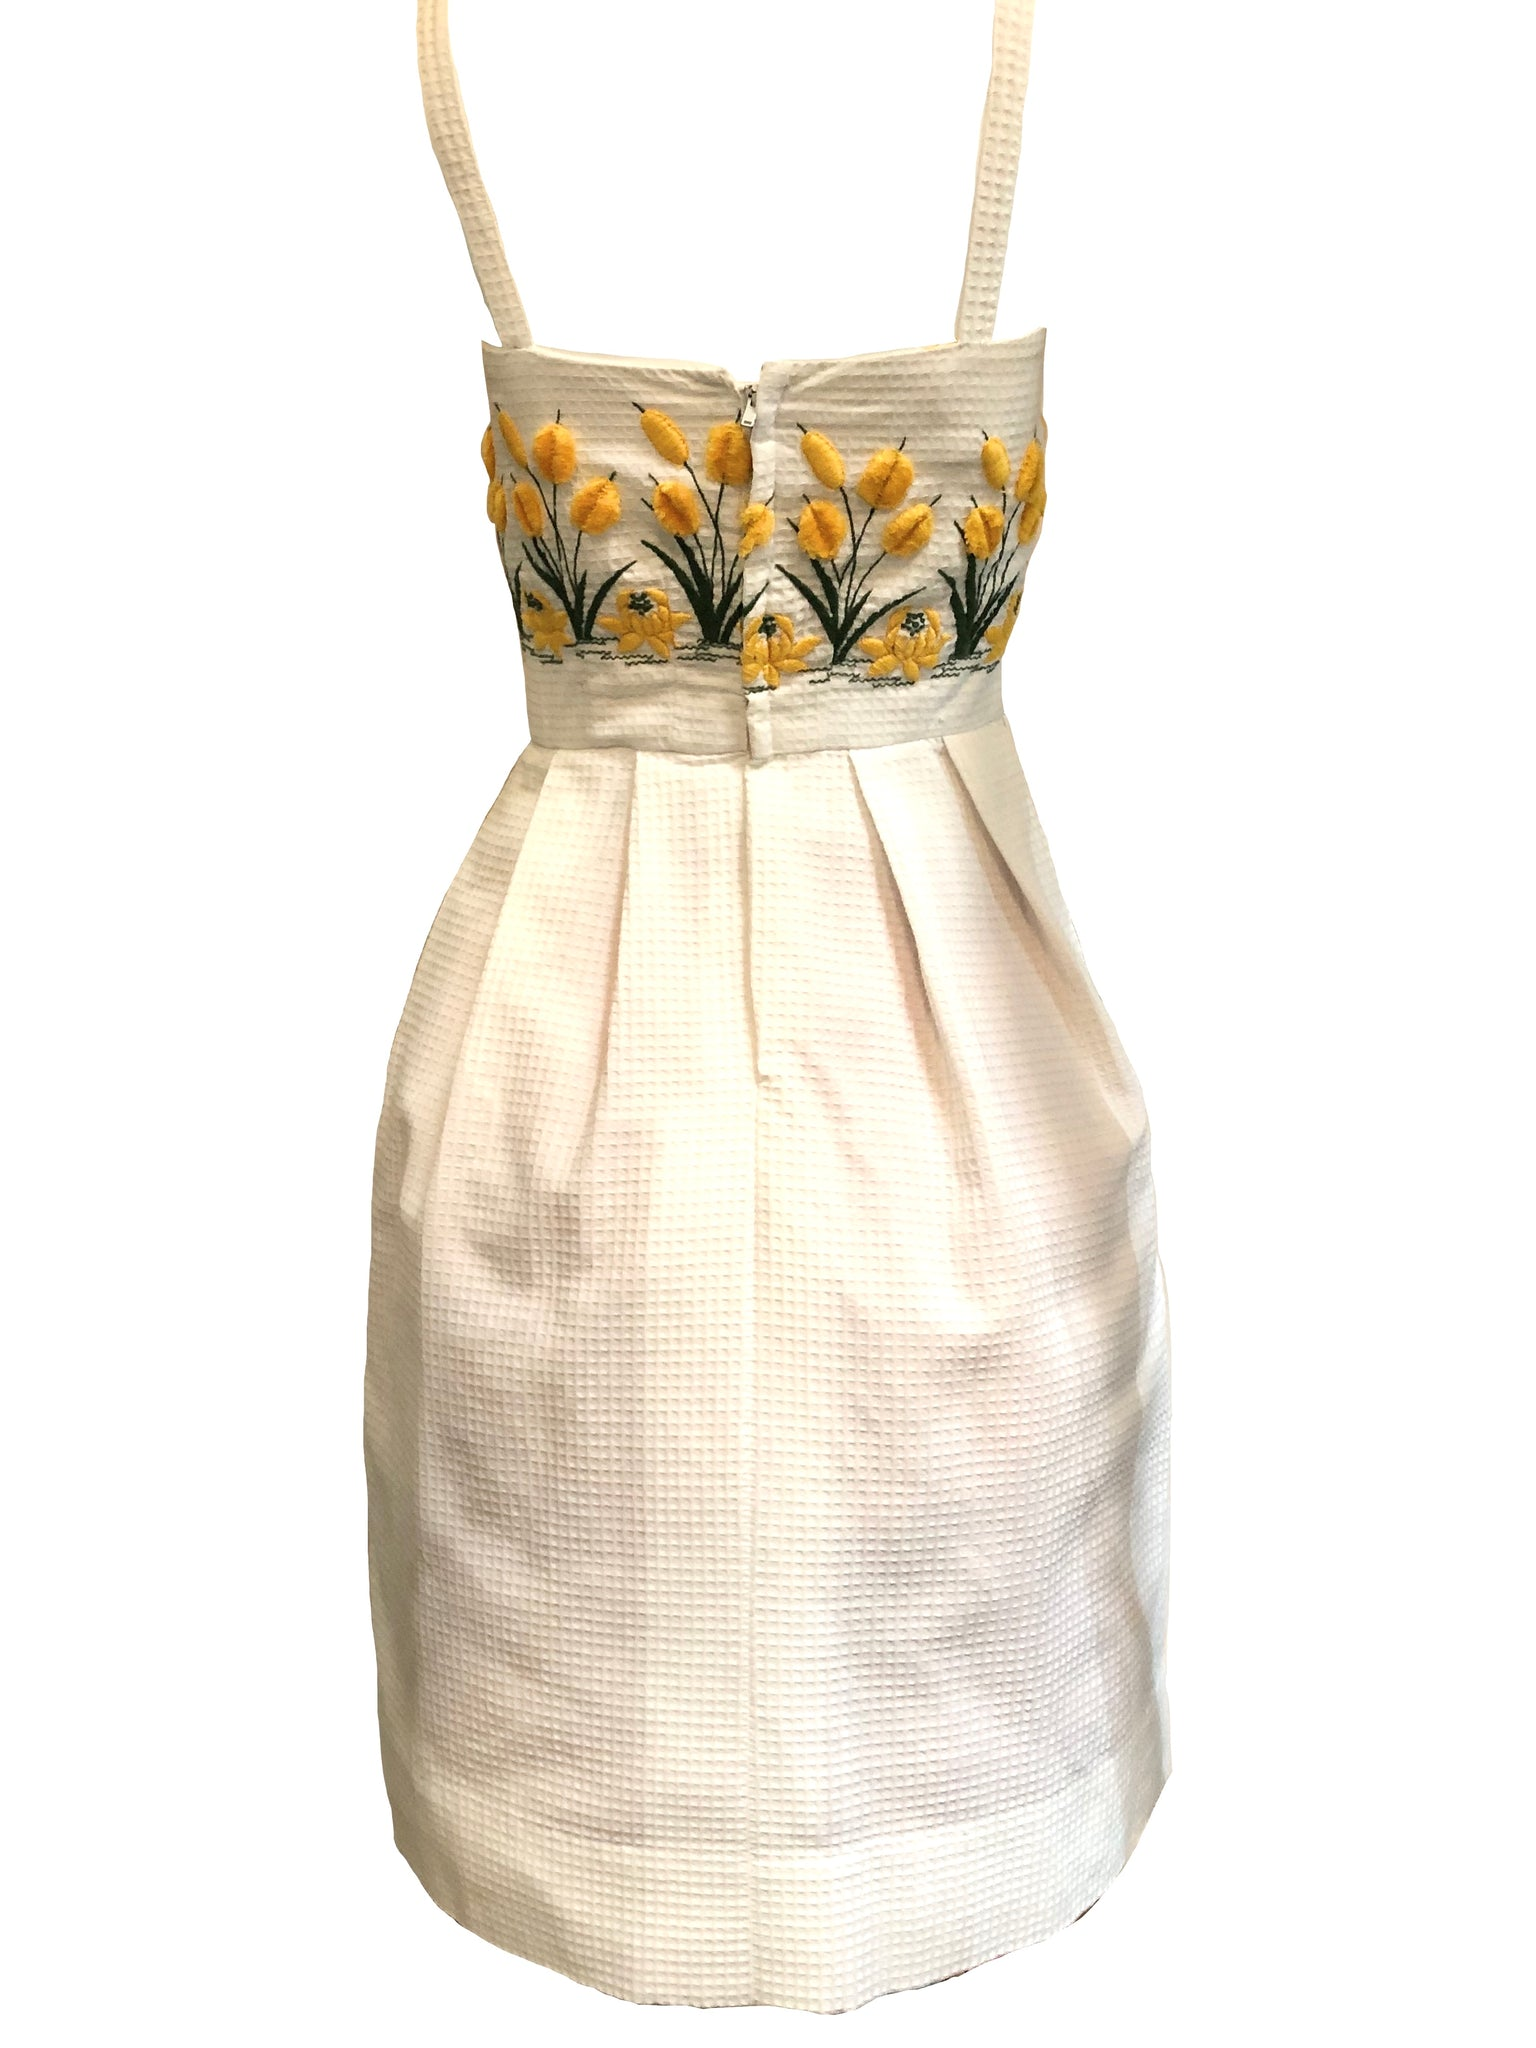 50s Dress White Pique with Yellow Floral Embroidery BACK 2 of 3